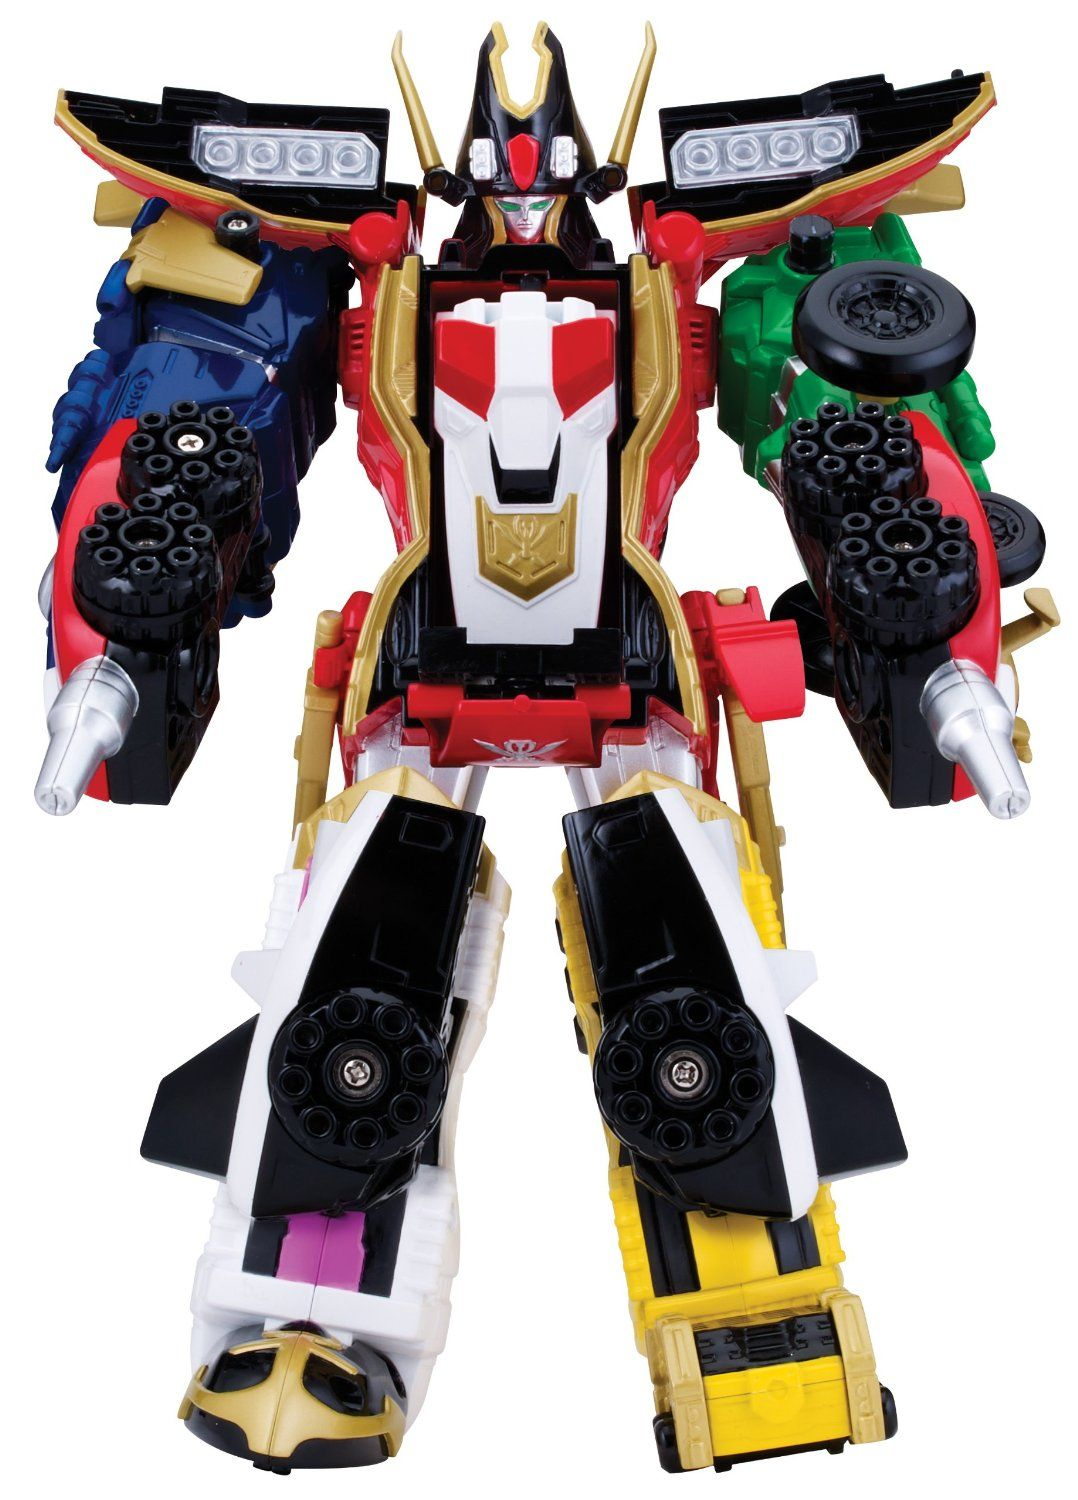 super megaforce megazord samurai cartoon images google. Black Bedroom Furniture Sets. Home Design Ideas